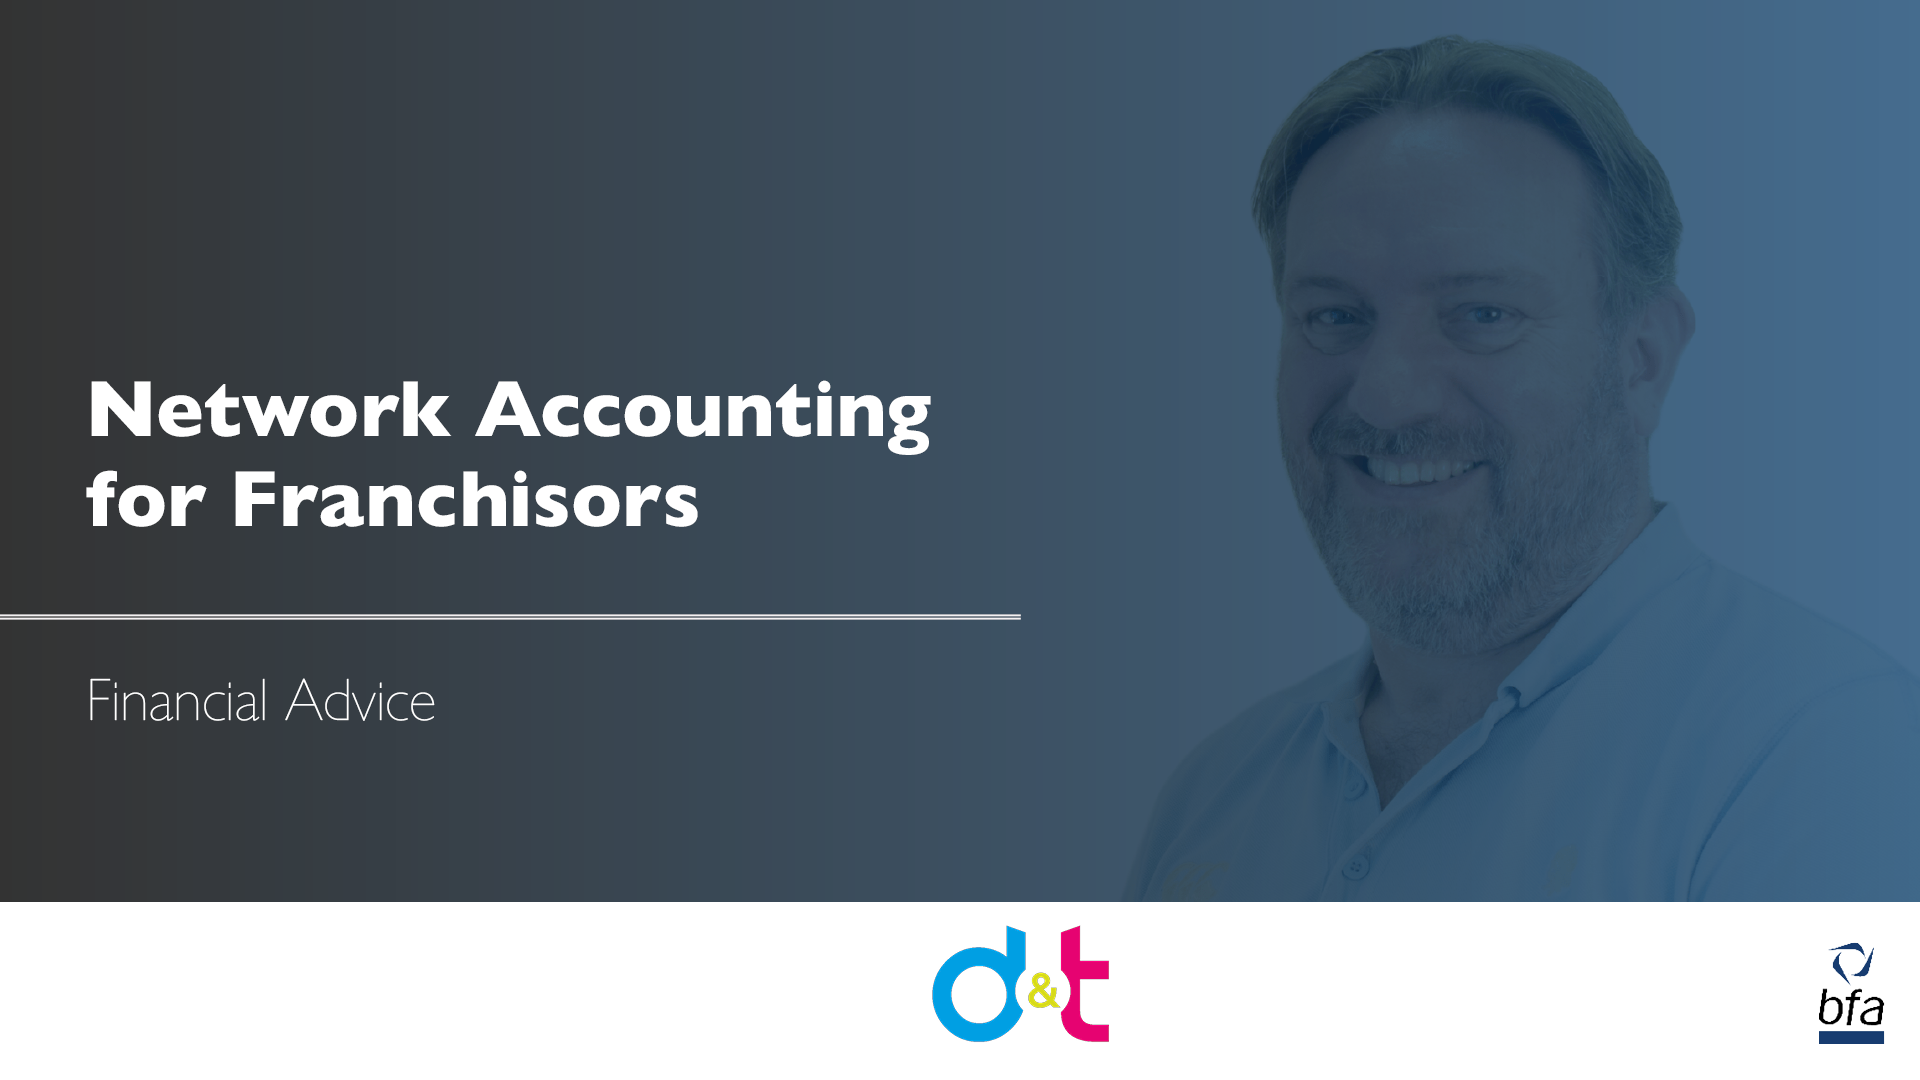 Network Accounting for Franchisors